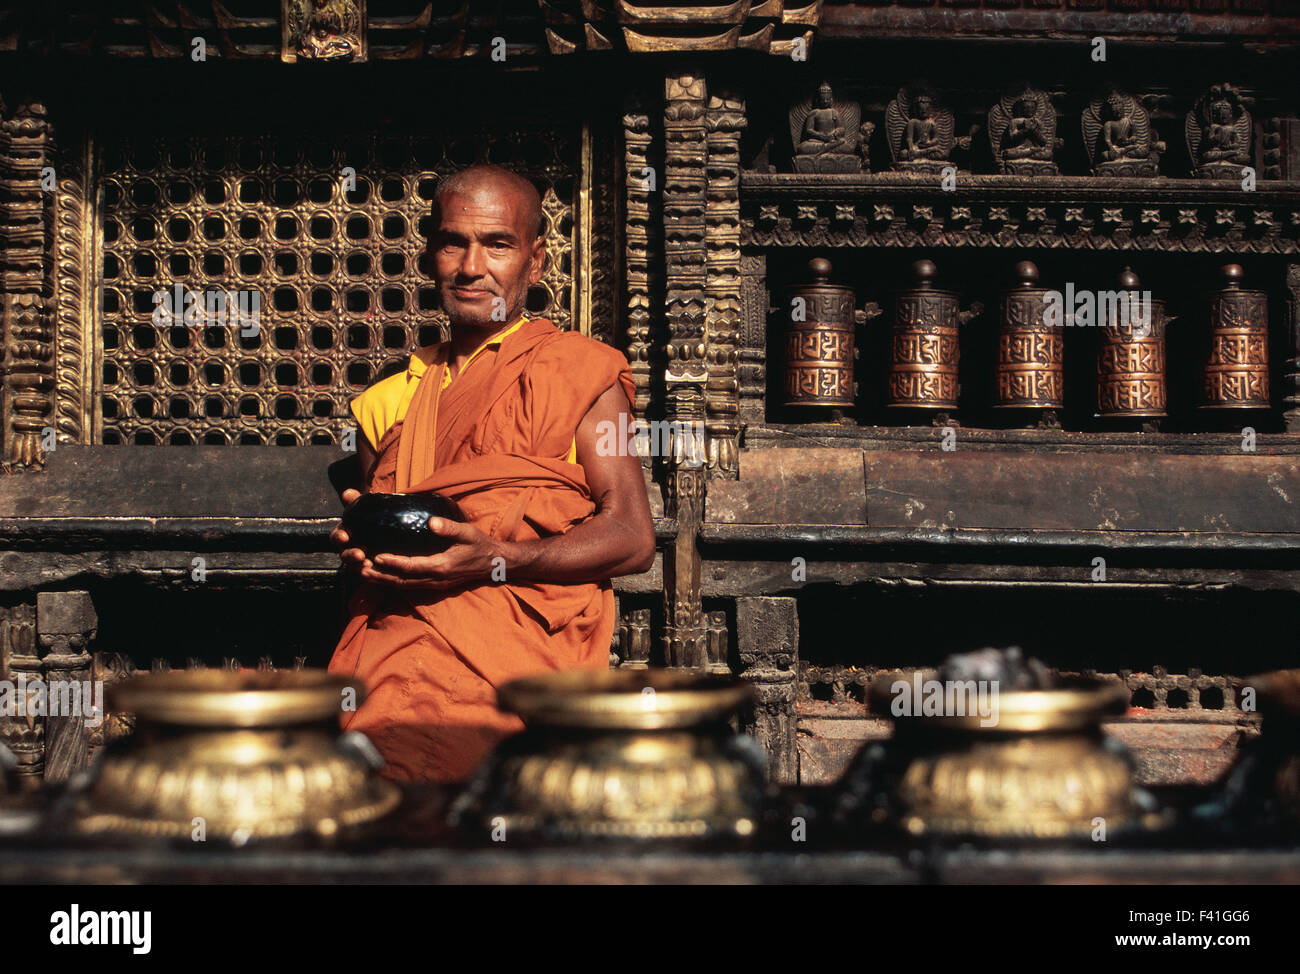 Theravada buddhist monk waiting for alms in the Harati temple ( Nepal) - Stock Image